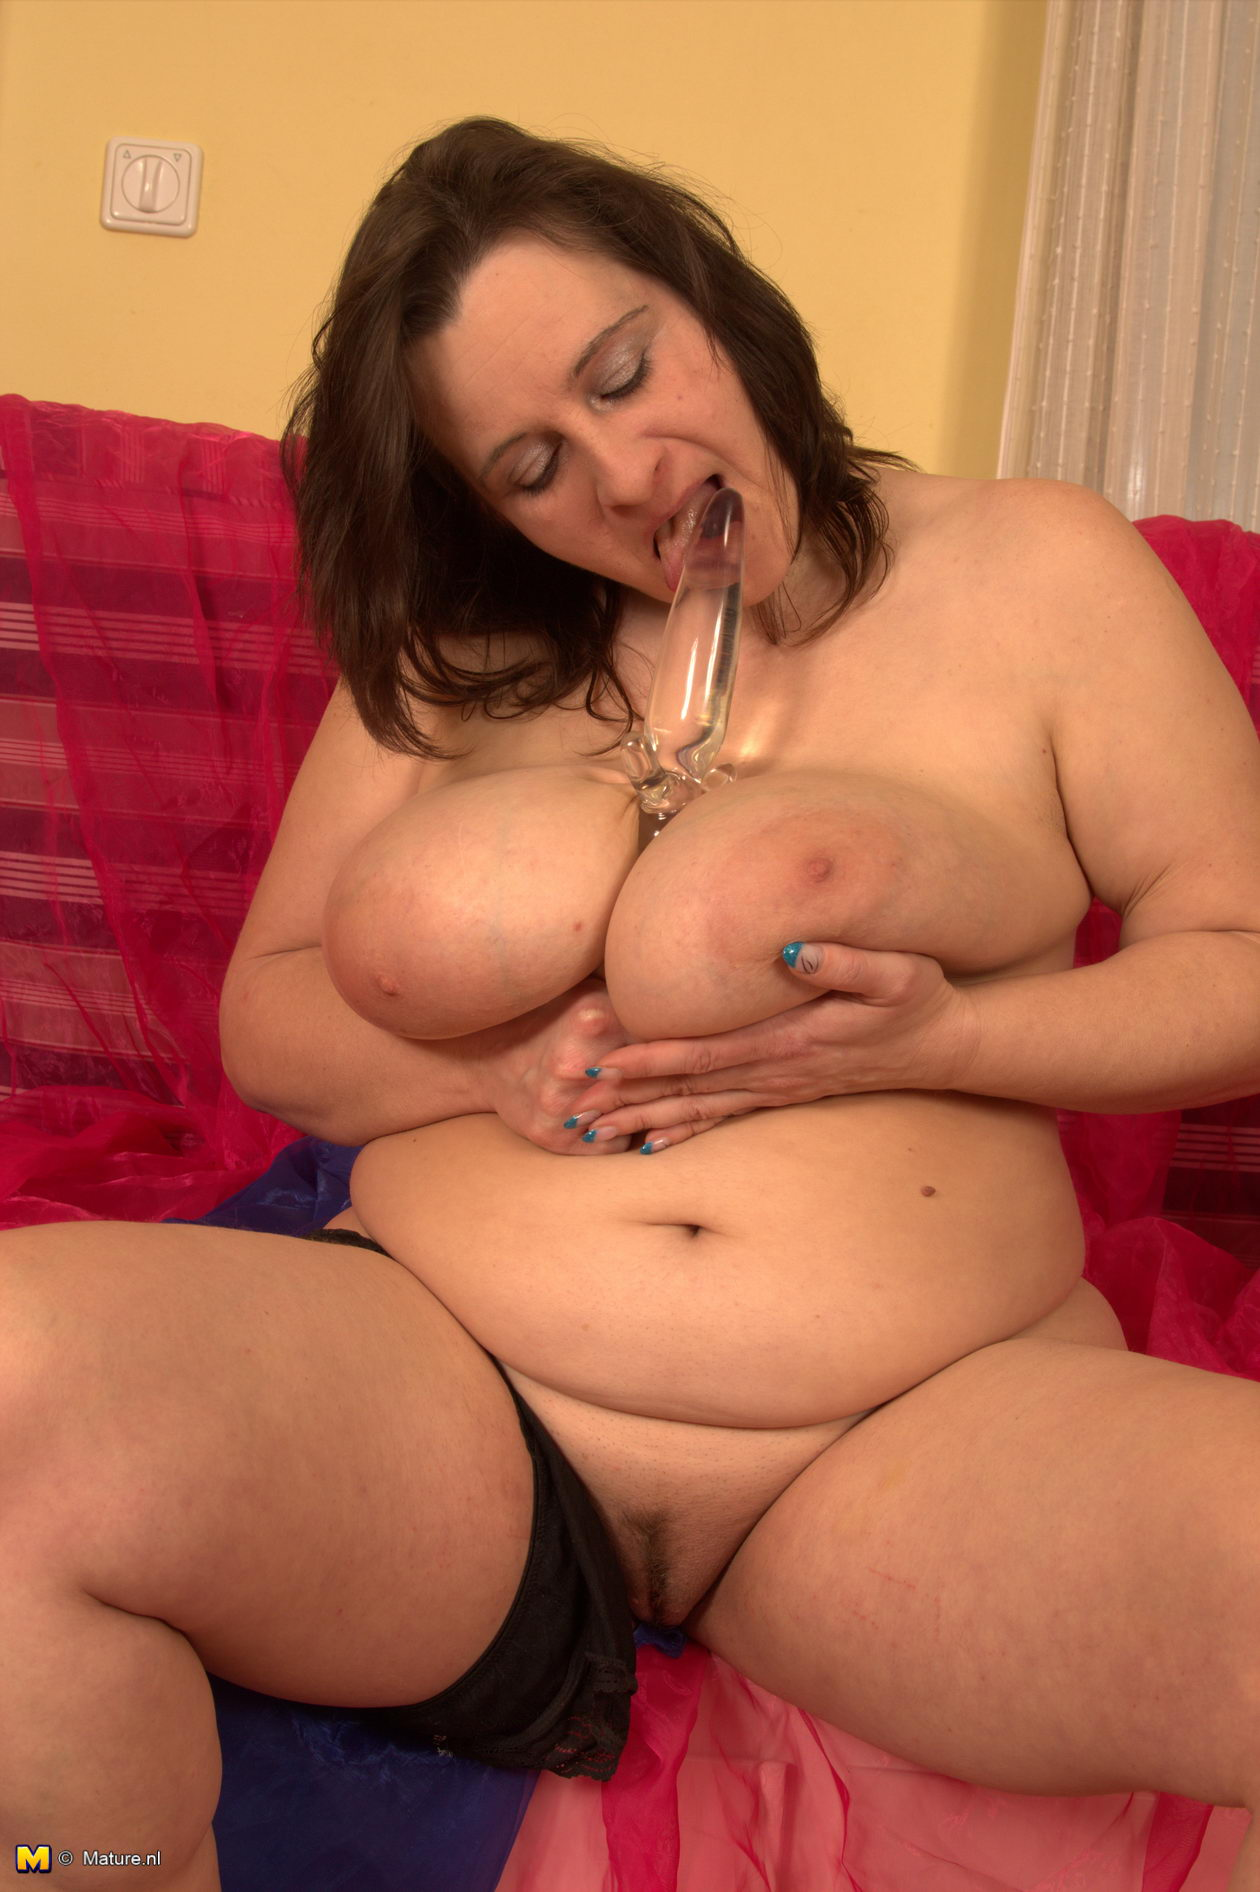 Big breasted mature slut playing with herself 2 4